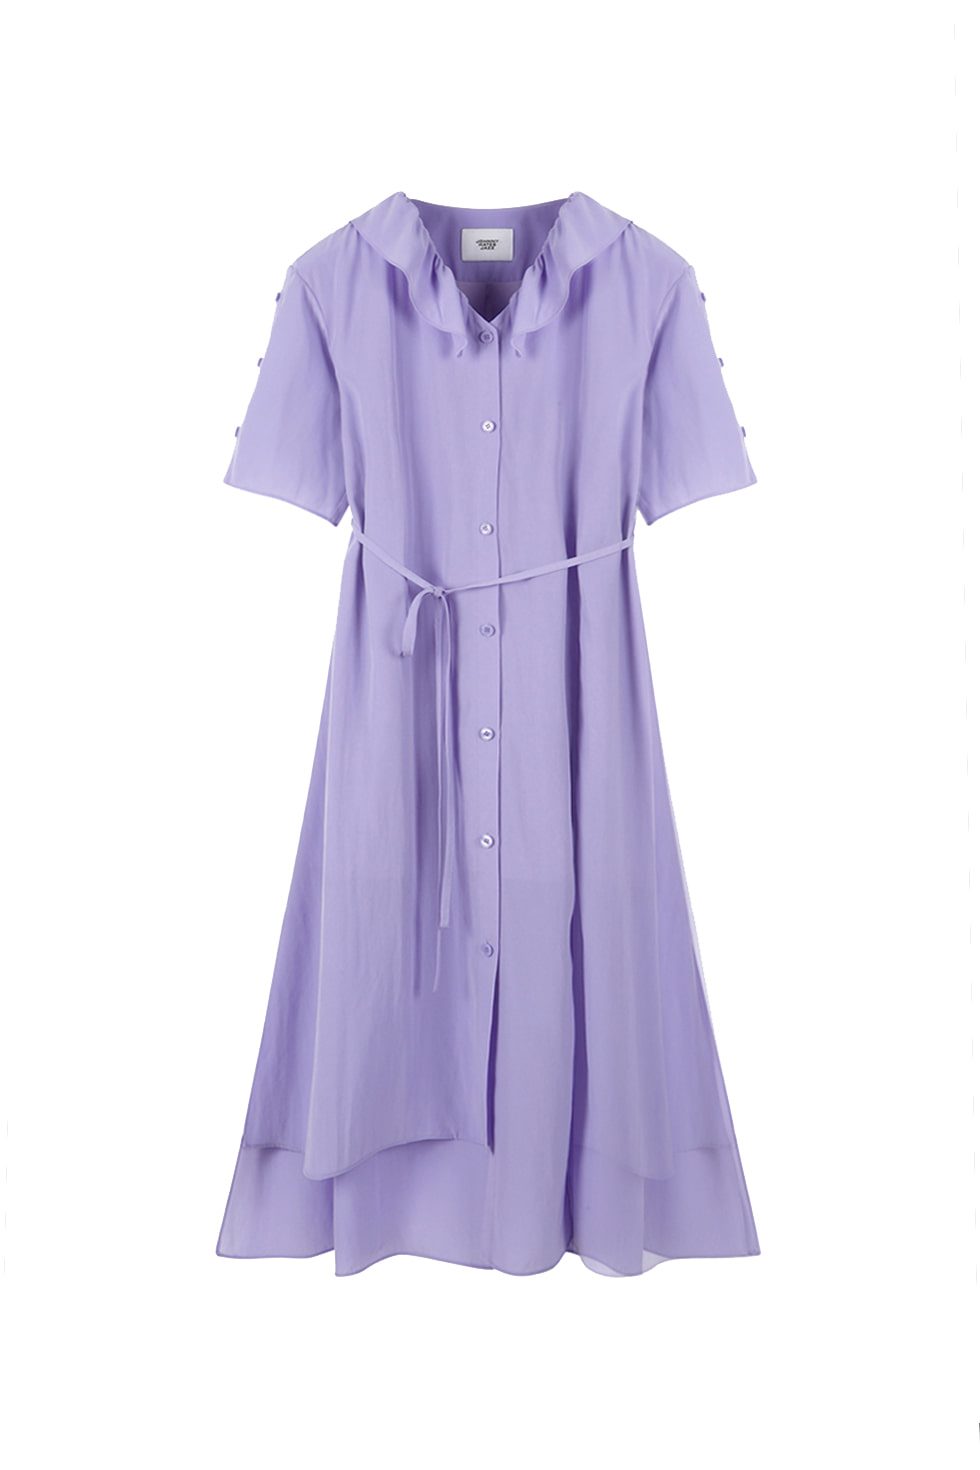 RUFFLE COLLAR DRESS - PURPLE